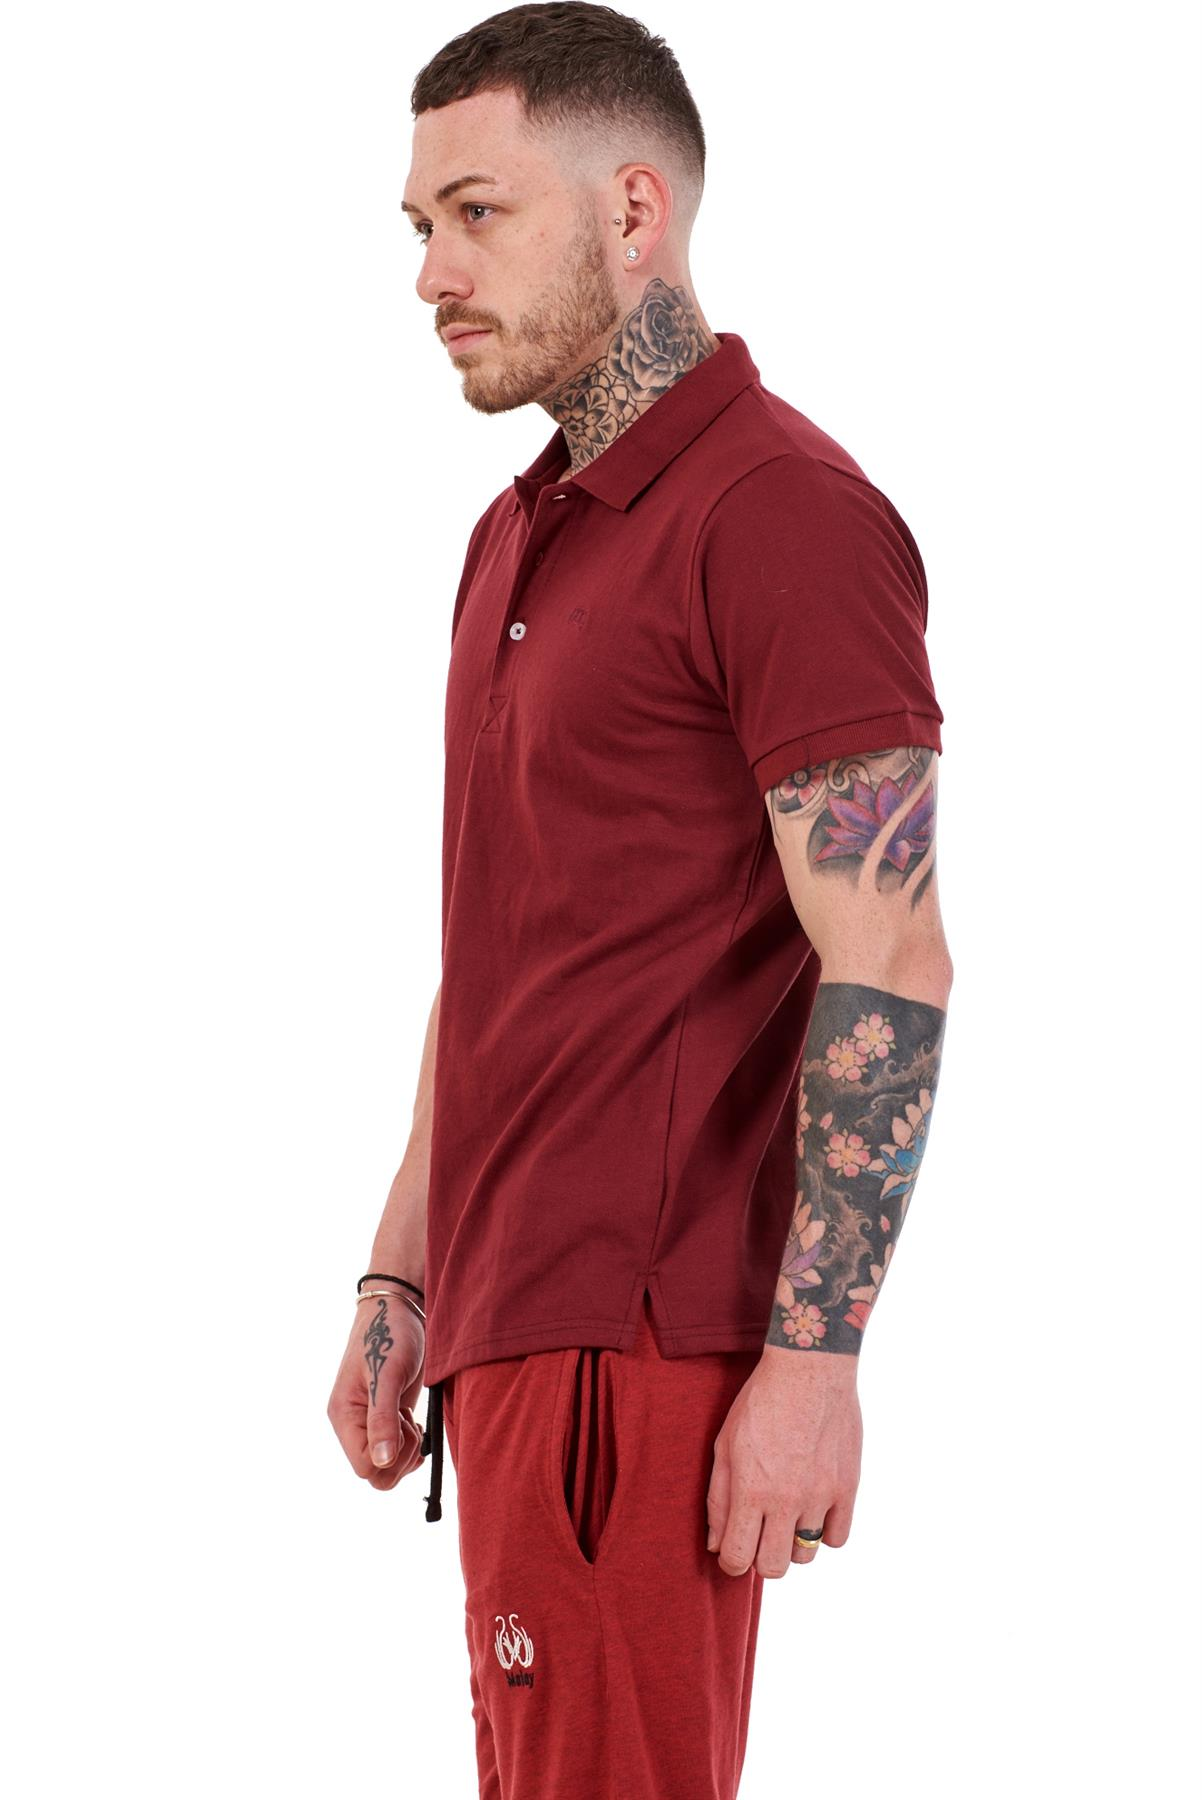 Mens-Plain-Solid-Polo-Cotton-T-Shirts-Regular-fit-Casual-Formal-Shirt-Top-M-XXL thumbnail 11